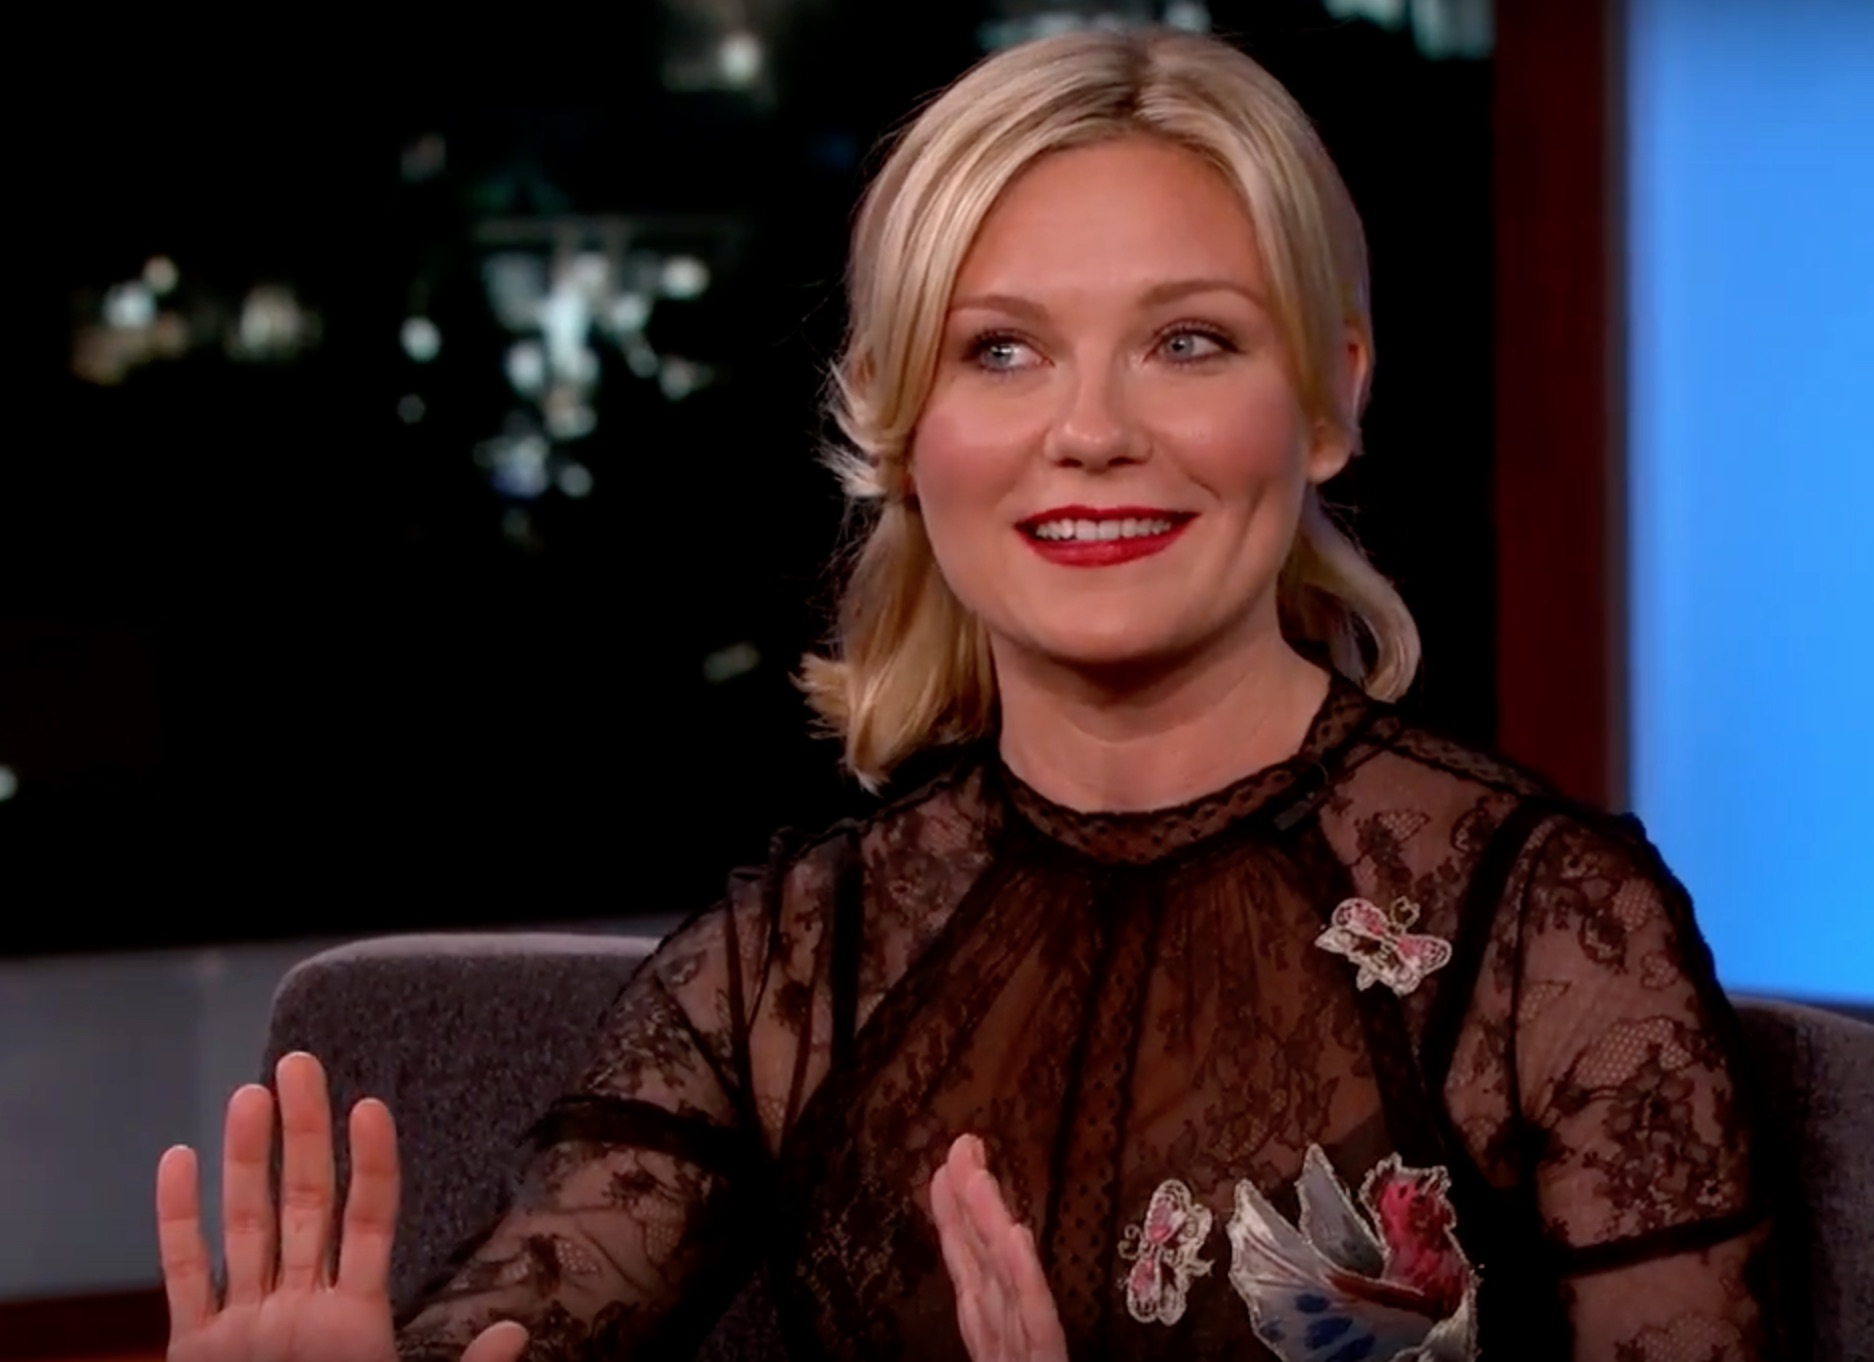 Kirsten Dunst has a touching way of saying goodbye to her characters